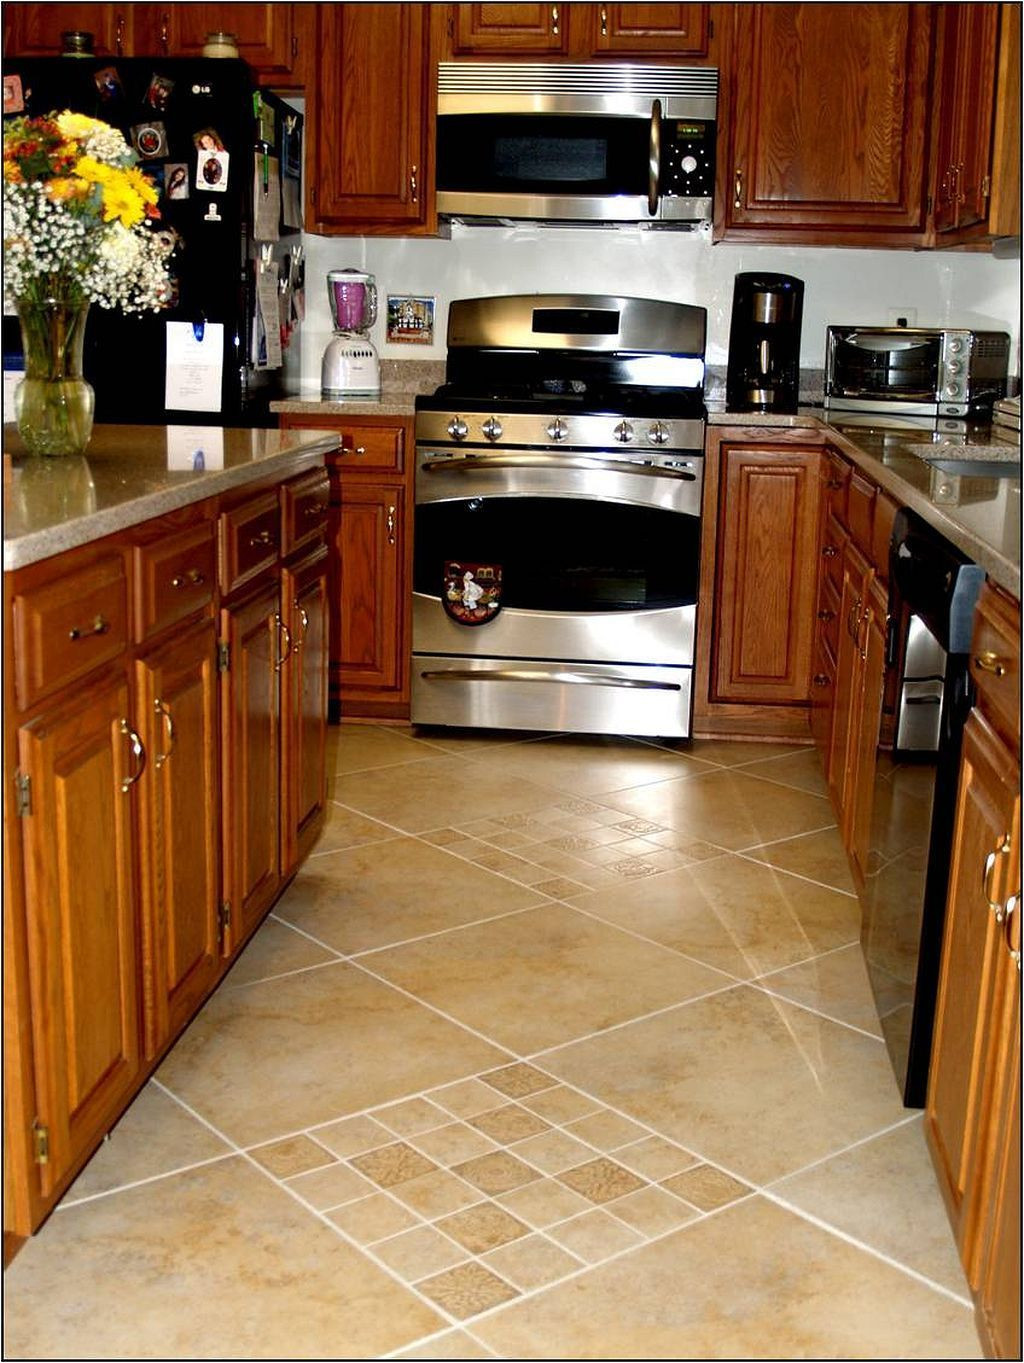 Hardwood Floor Installation Layout Of Pin by Kitchen Flooring Ideas On Kitchen Flooring Ideas Pinterest with Ceramic Tile Designs for Kitchen Floors Installing Ceramic Tile Flooring Might Be Done by Anyone with Great Eyesight or G Click now for Info